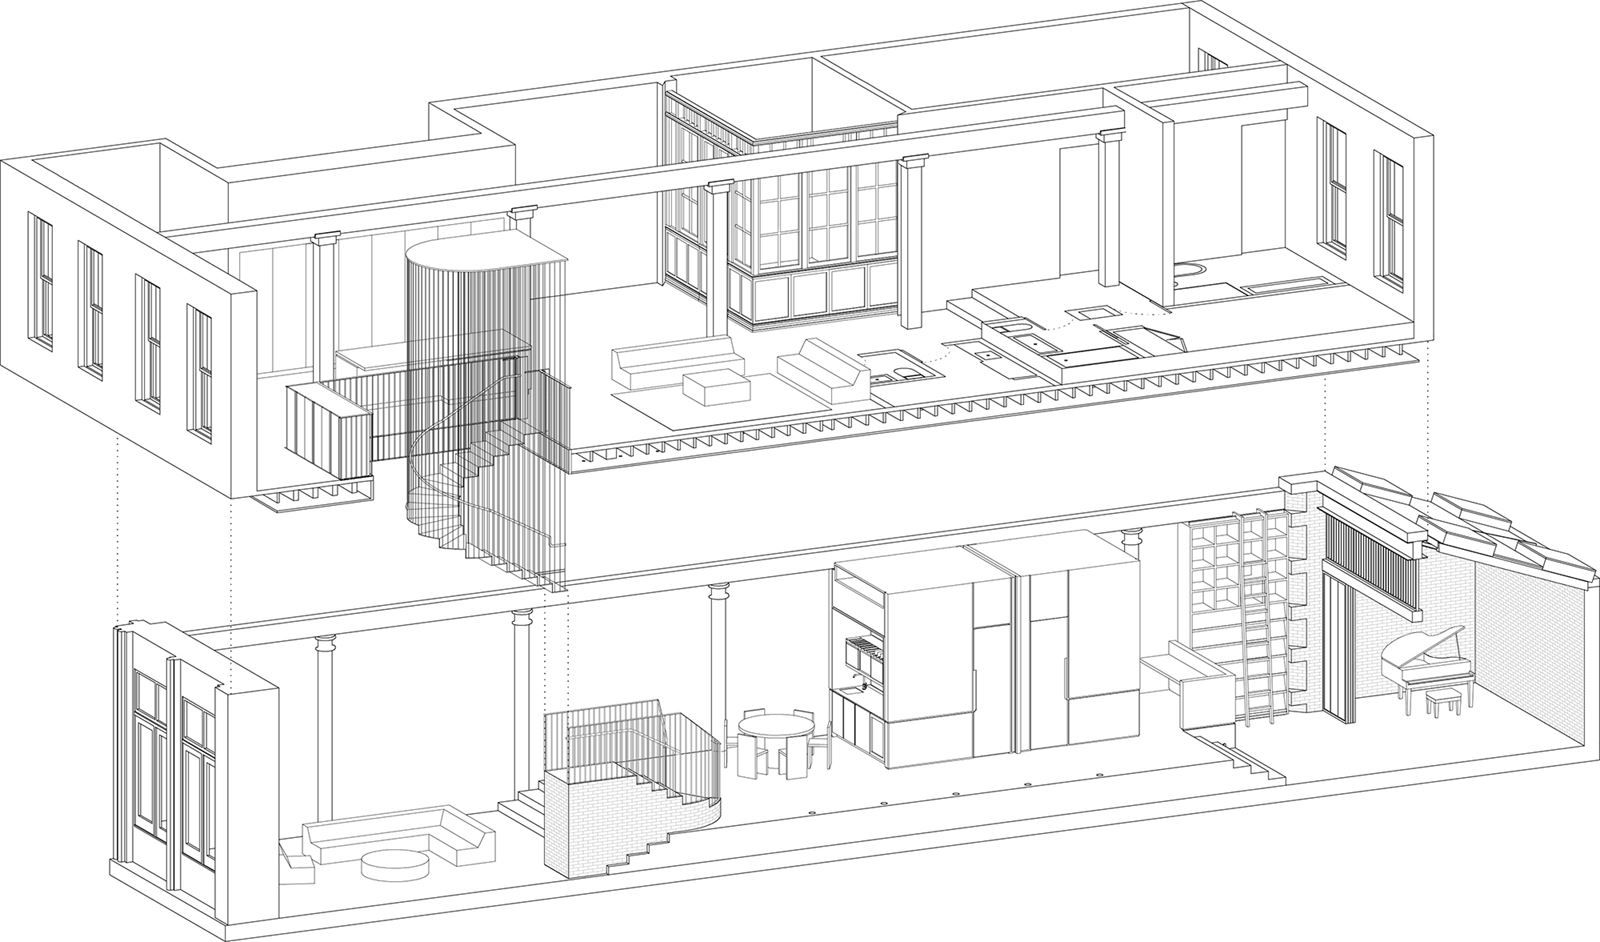 Raft loft picture gallery detail working drawings design